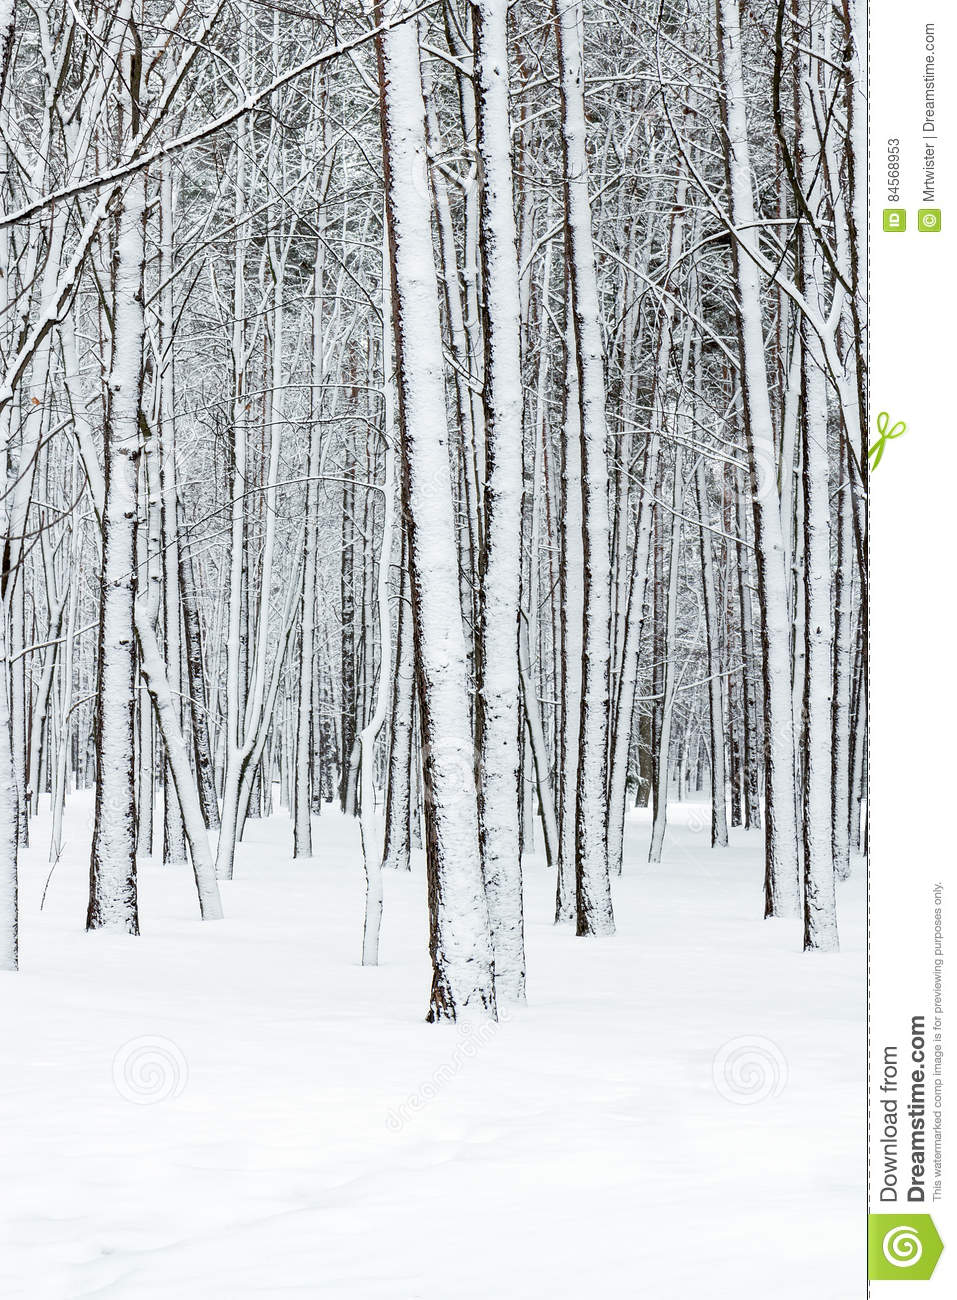 snowy forest white tree branches winter themed beautiful winter forest with bare tree trunks covered by 255